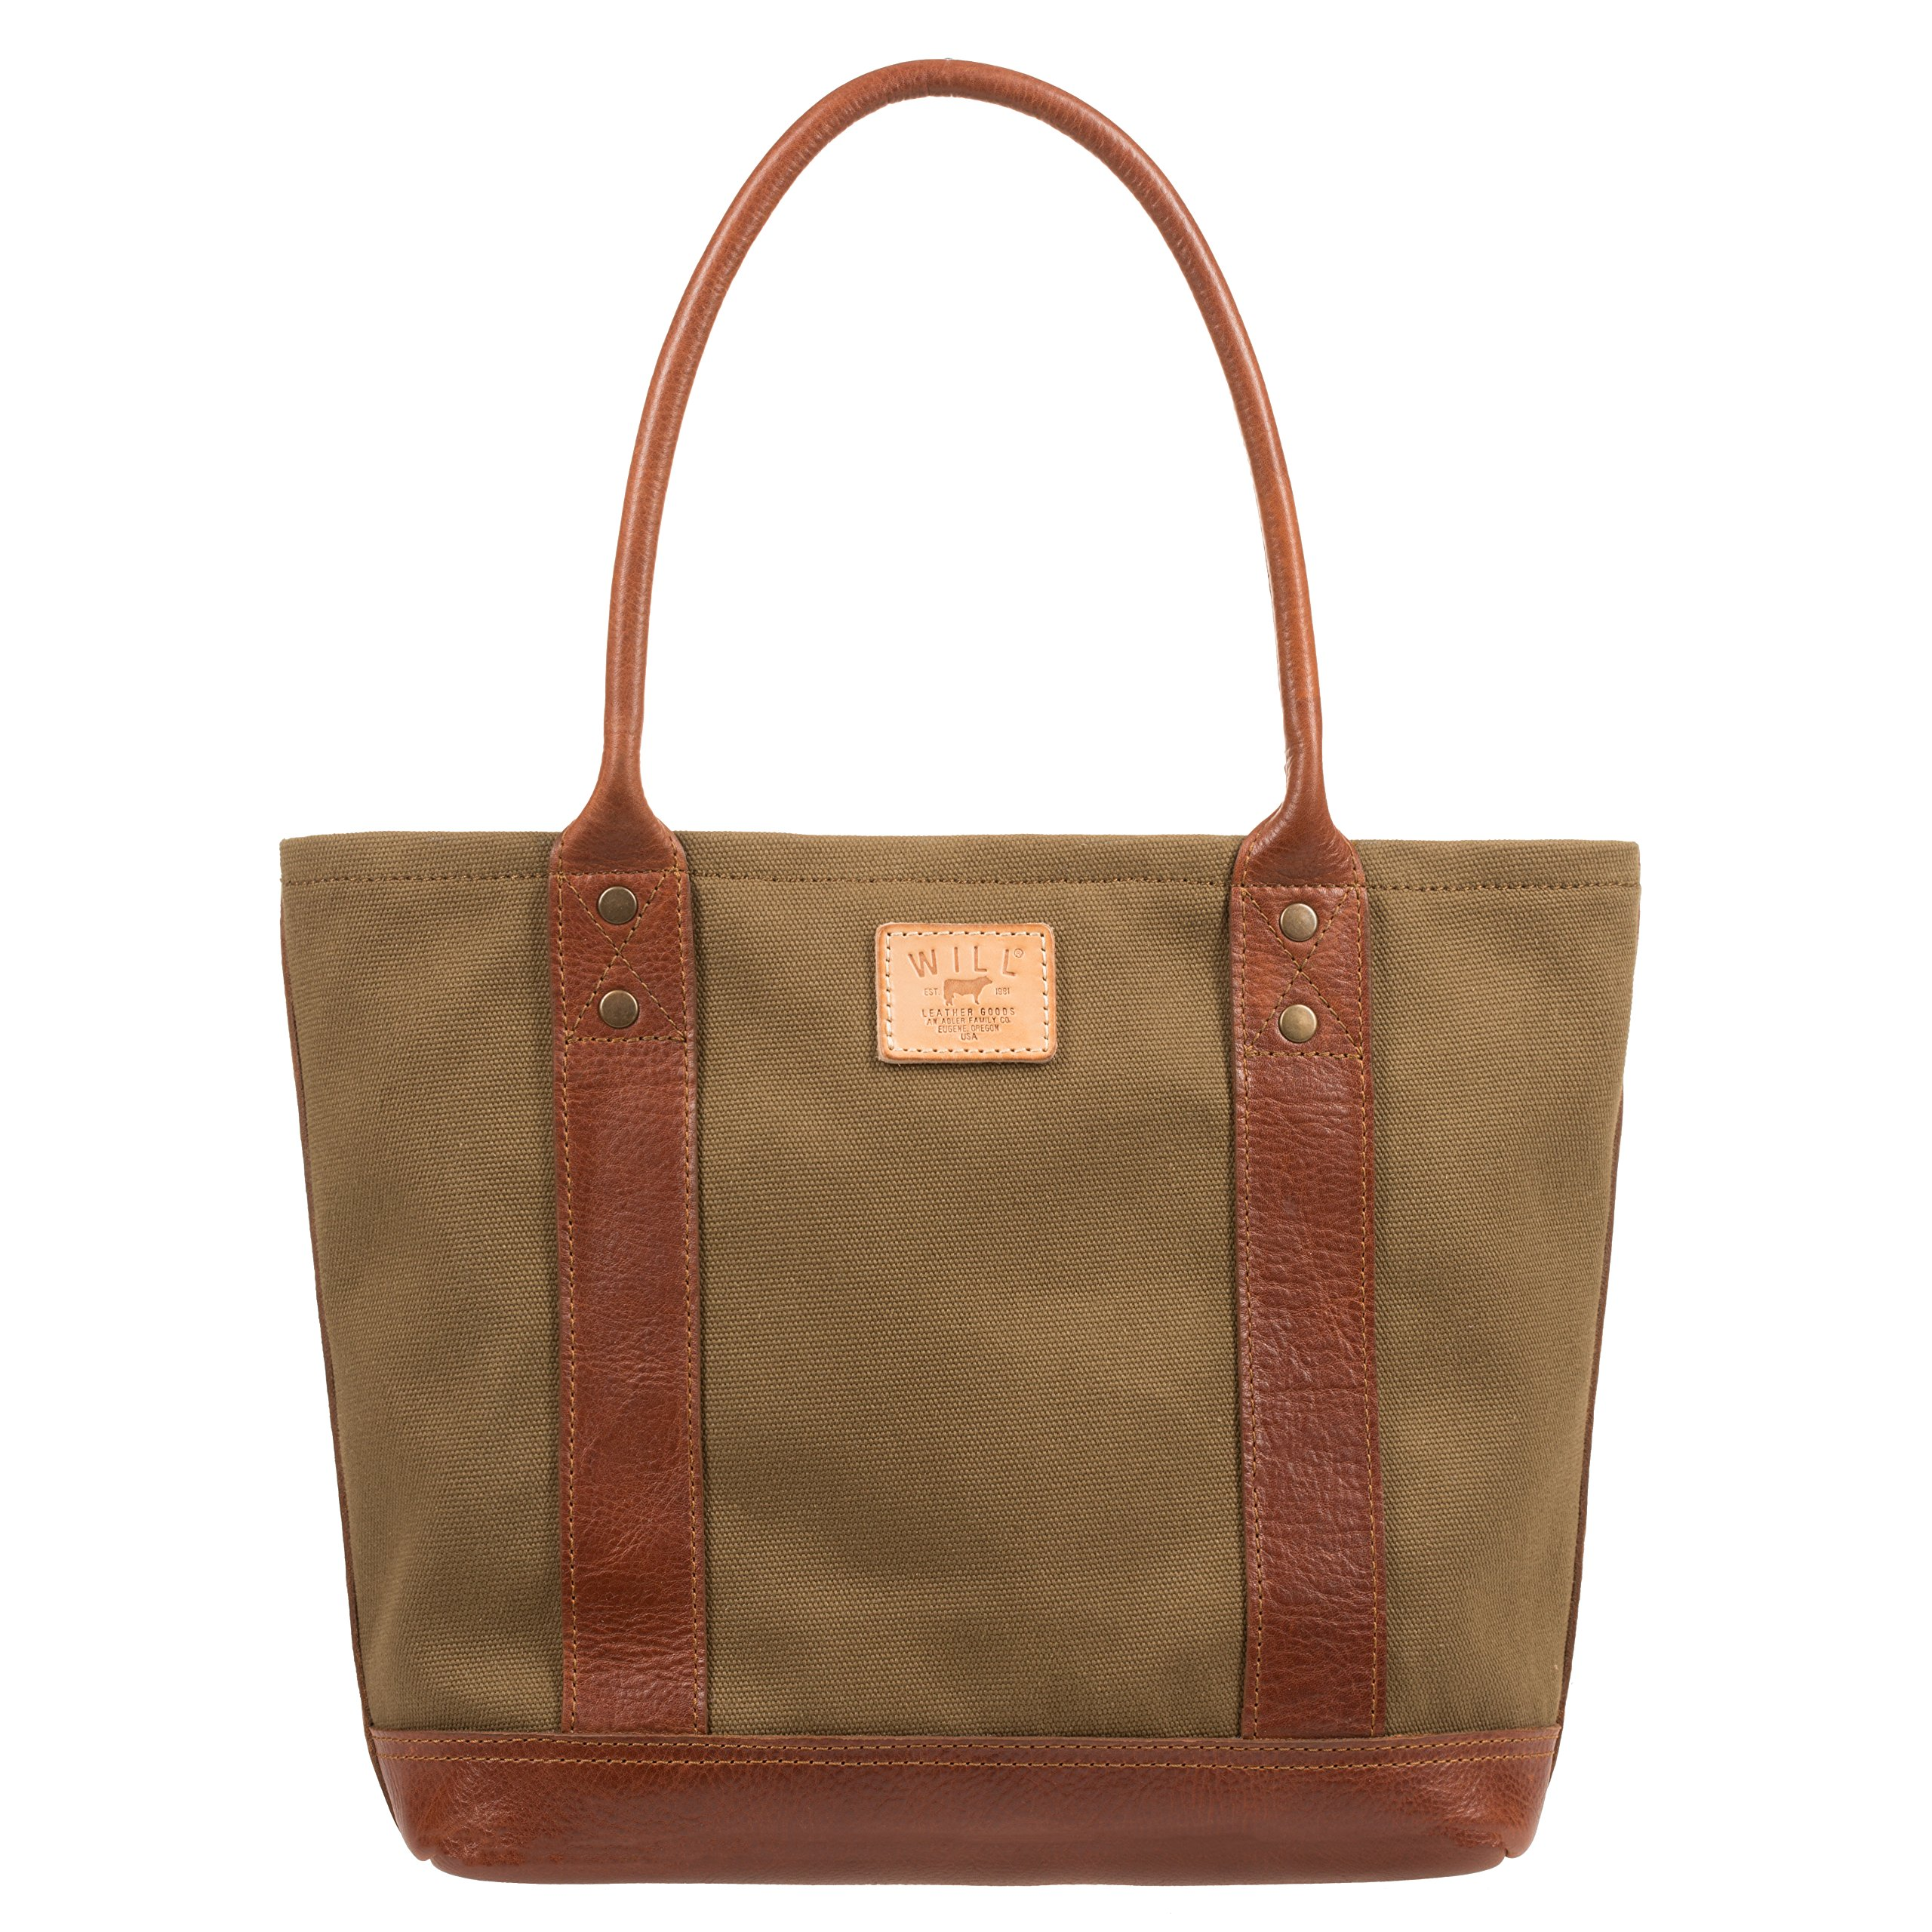 Will Leather Goods Women's Medium Signature Canvas Leather Tote, Tobacco & Saddle Brown